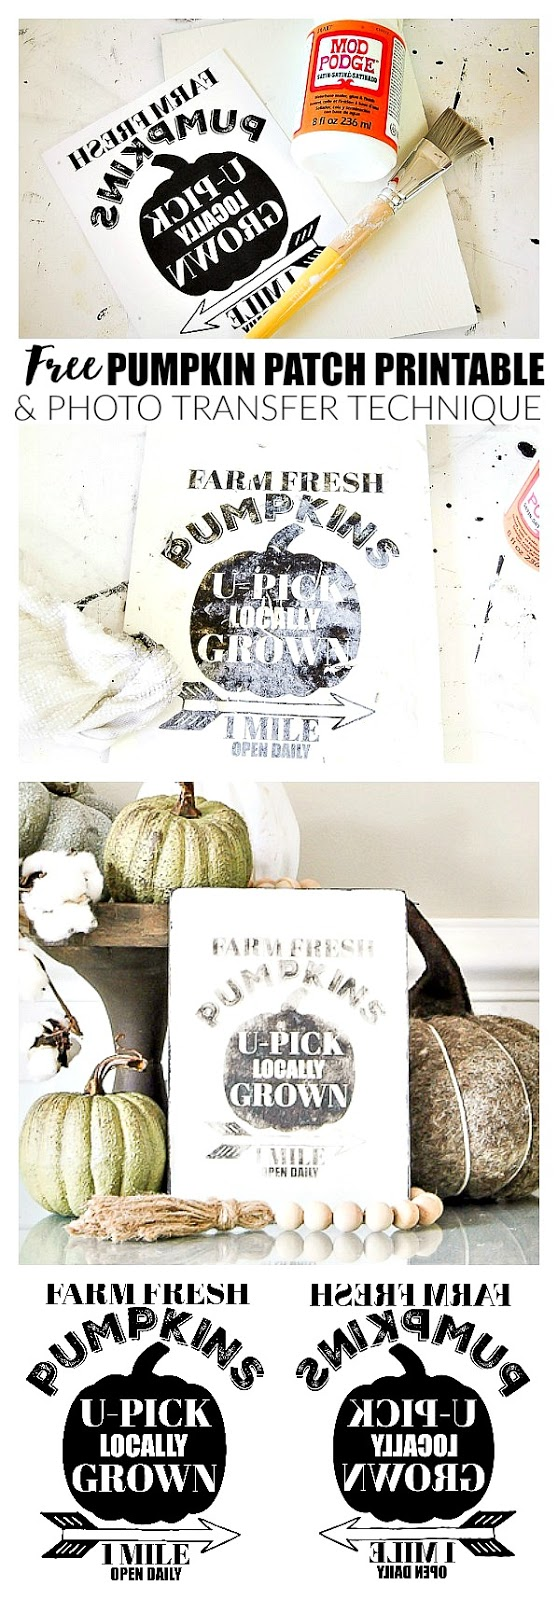 pumpkin patch printable, free printable, image transfer to wood